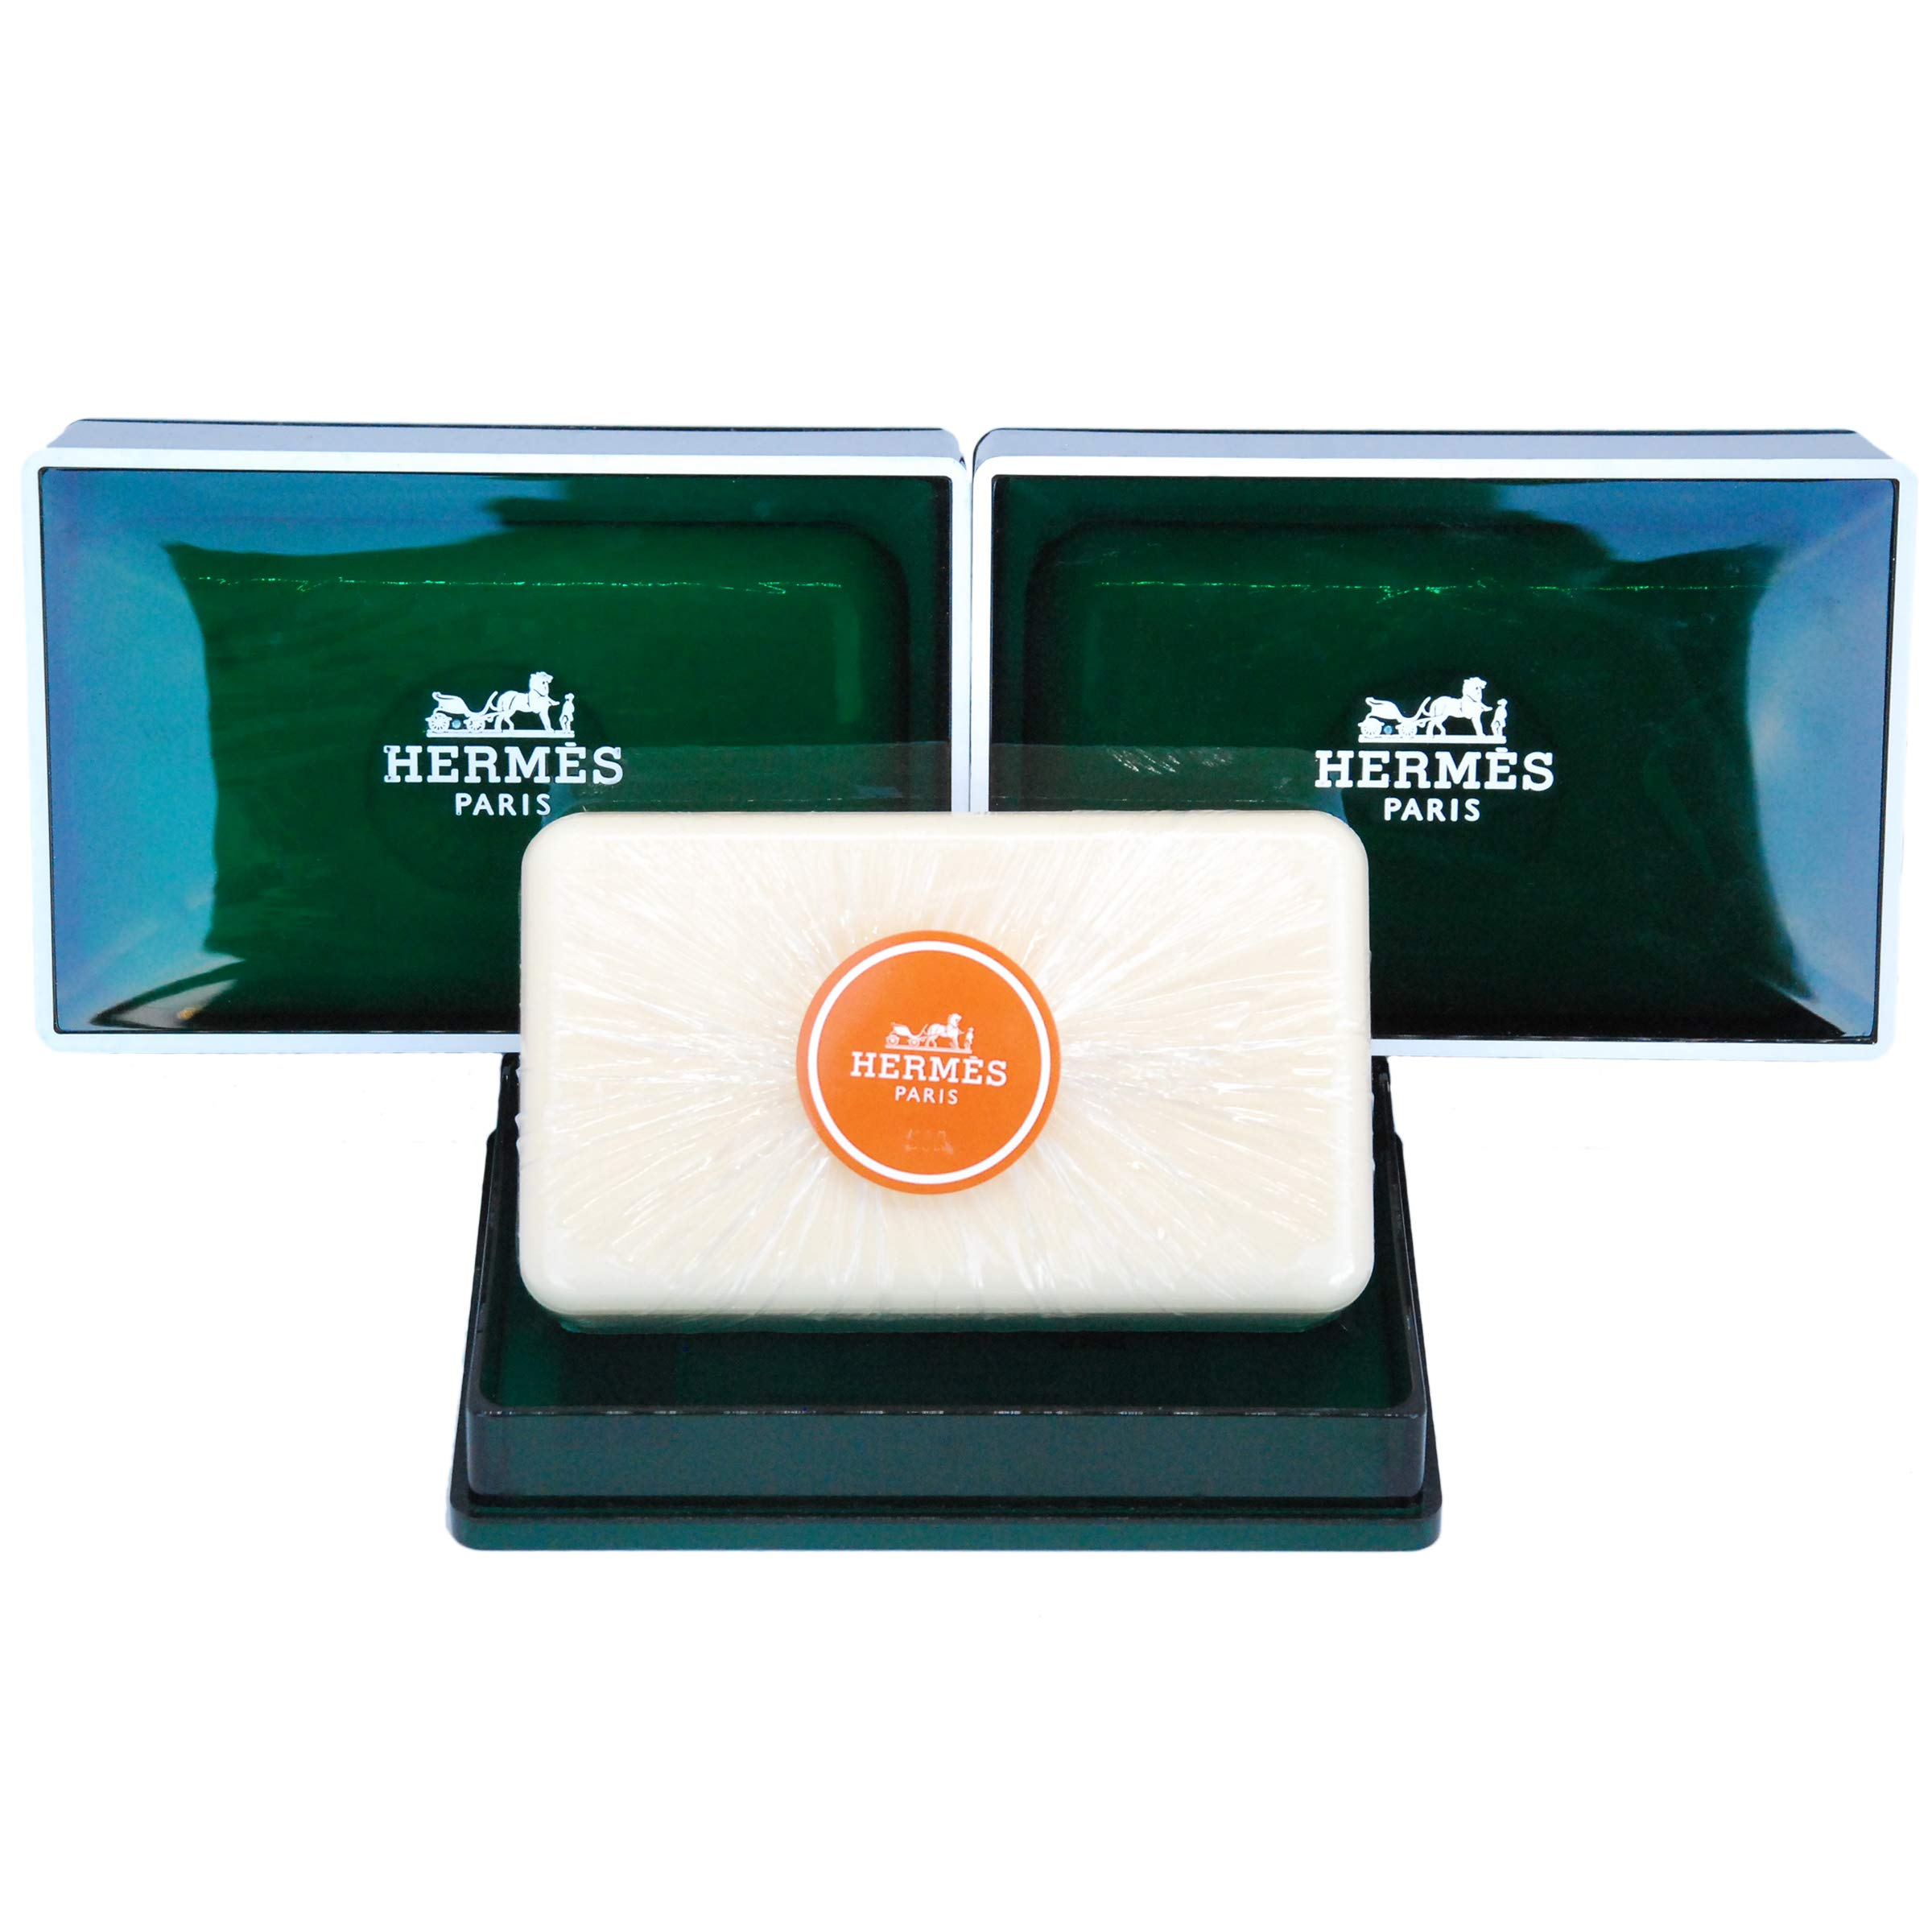 Hermès Jumbo Soaps - Eau d'Orange Verte Luxury Perfumed Gift Soaps Imported From Hermès Paris - Citrus and Mint Fragrance - 5.2 Ounces / 150 Grams - 2 Gift Boxed Perfumed Soaps / Savons Parfume in Bubble Bag - Total 10.4 Ounces / 300 Grams (Pack of 2)